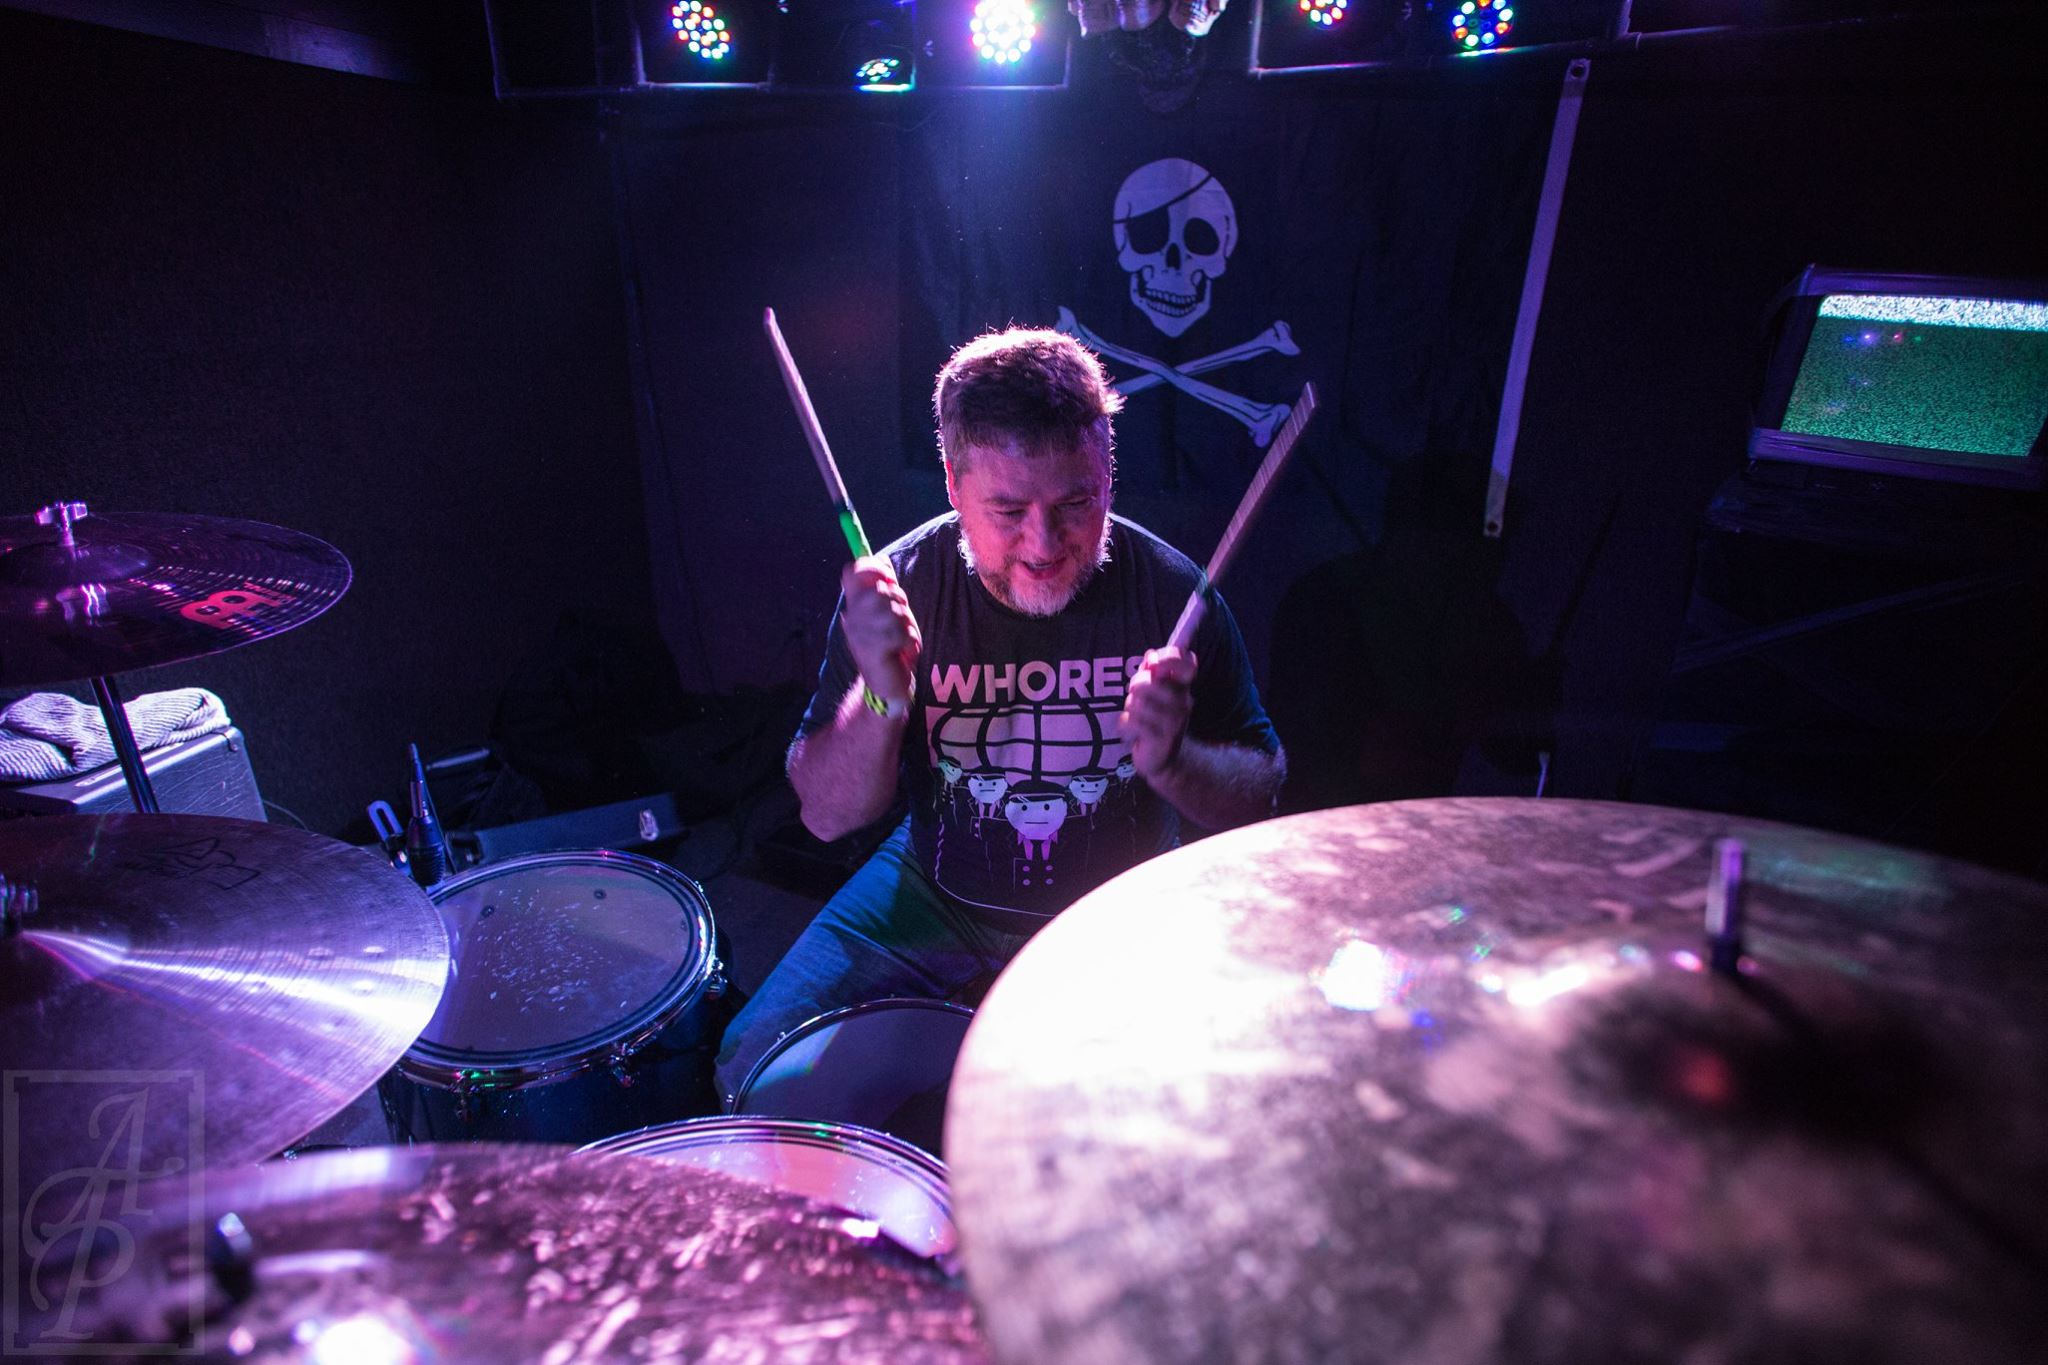 Drummer Todd Karinen poses with Scorpion Percussion drumsticks behind his drumkit